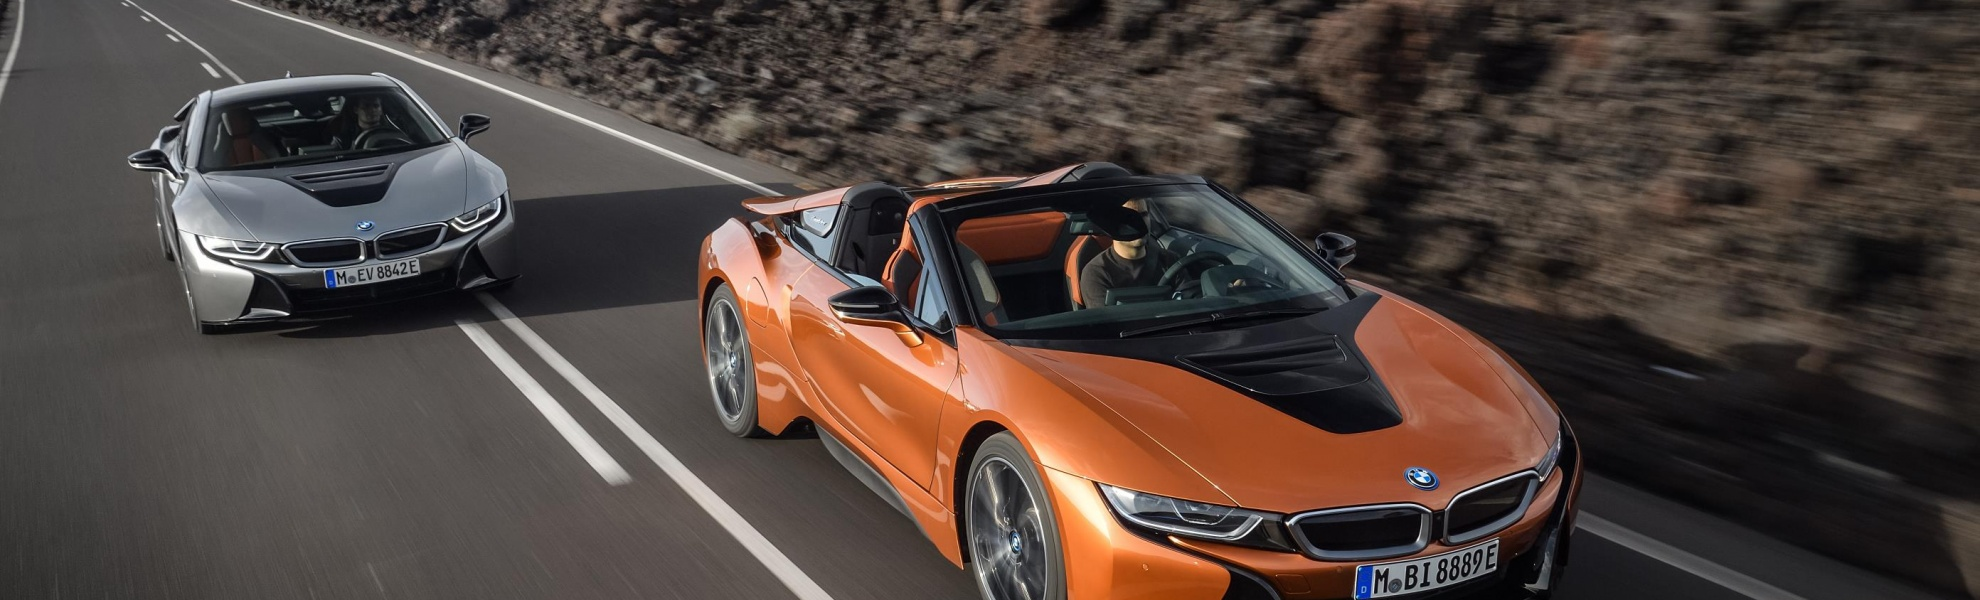 bmw_i8_critical_software.jpg